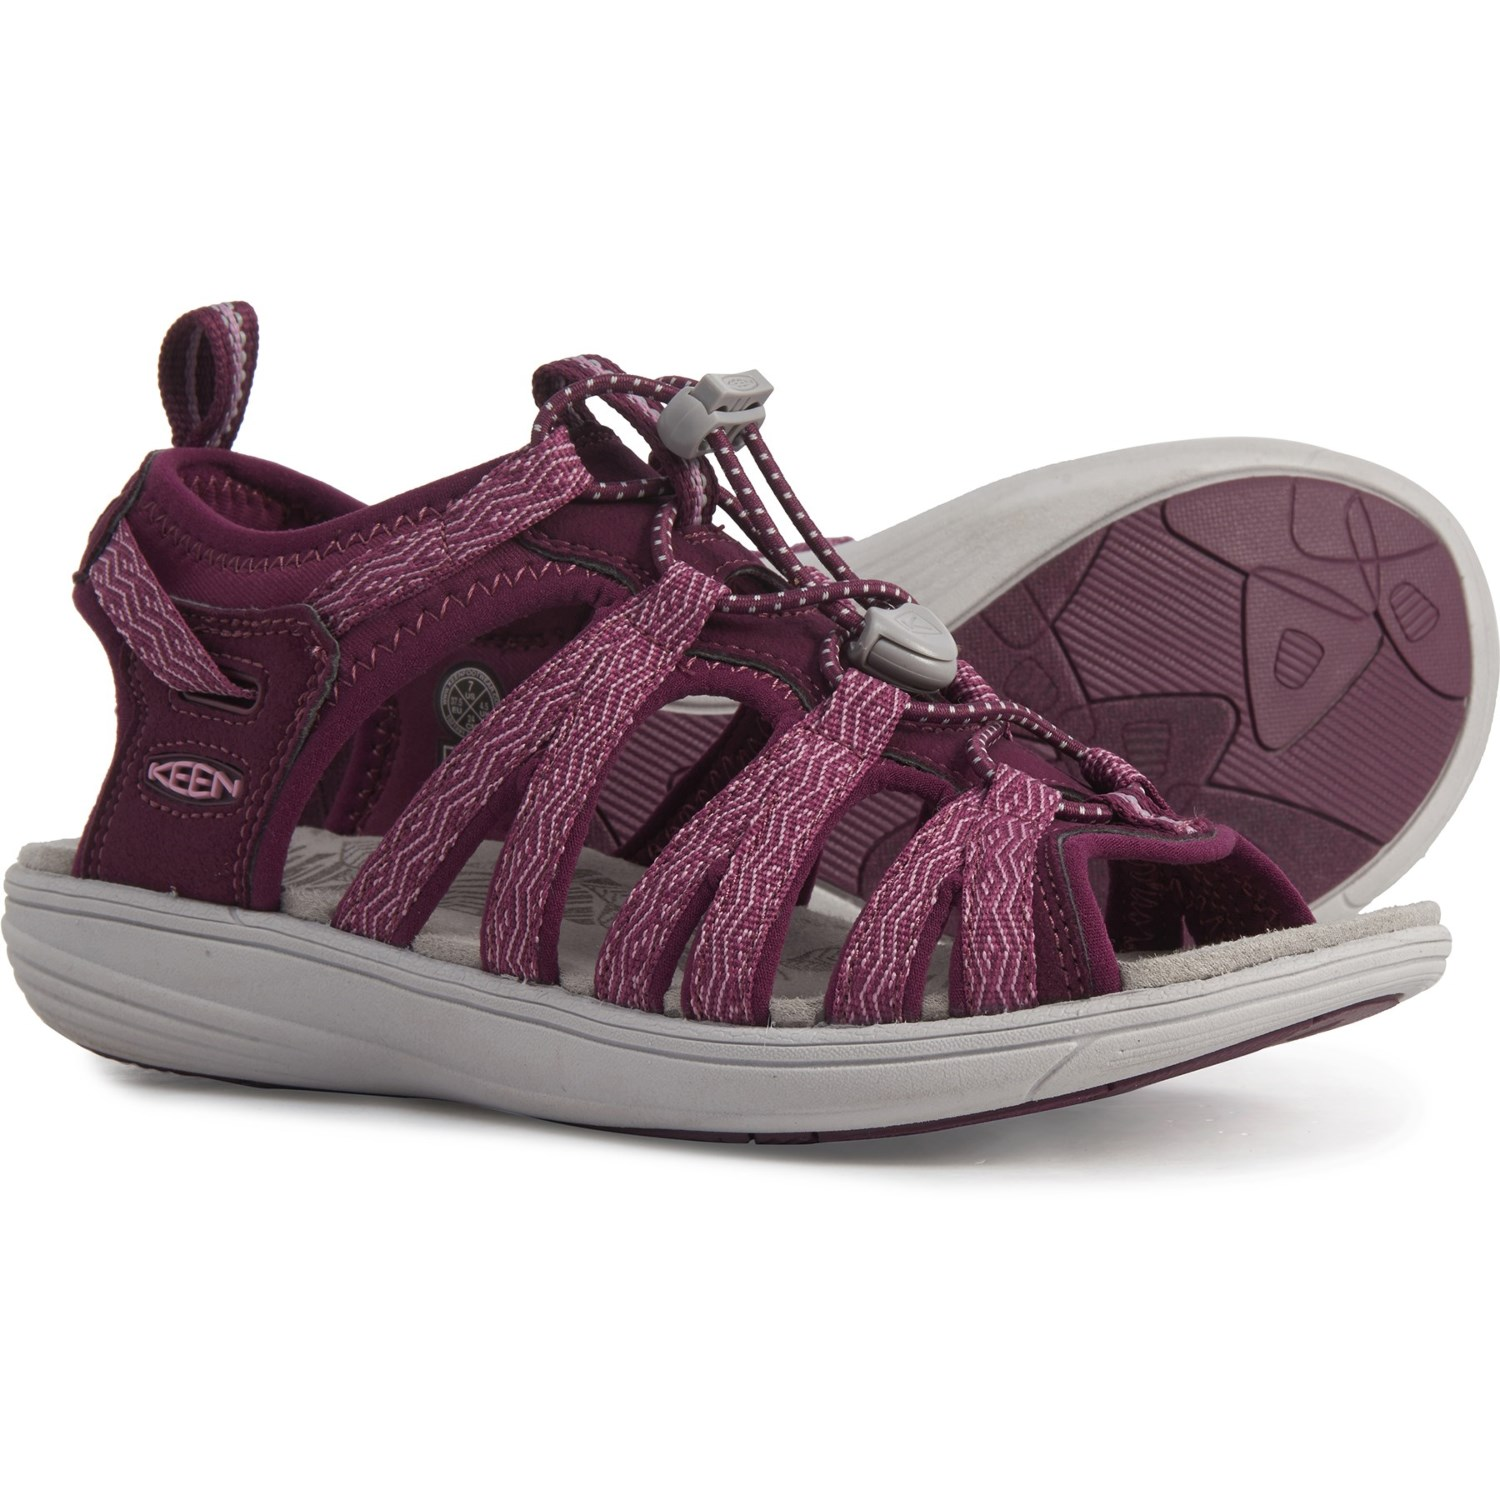 keen shoes for women